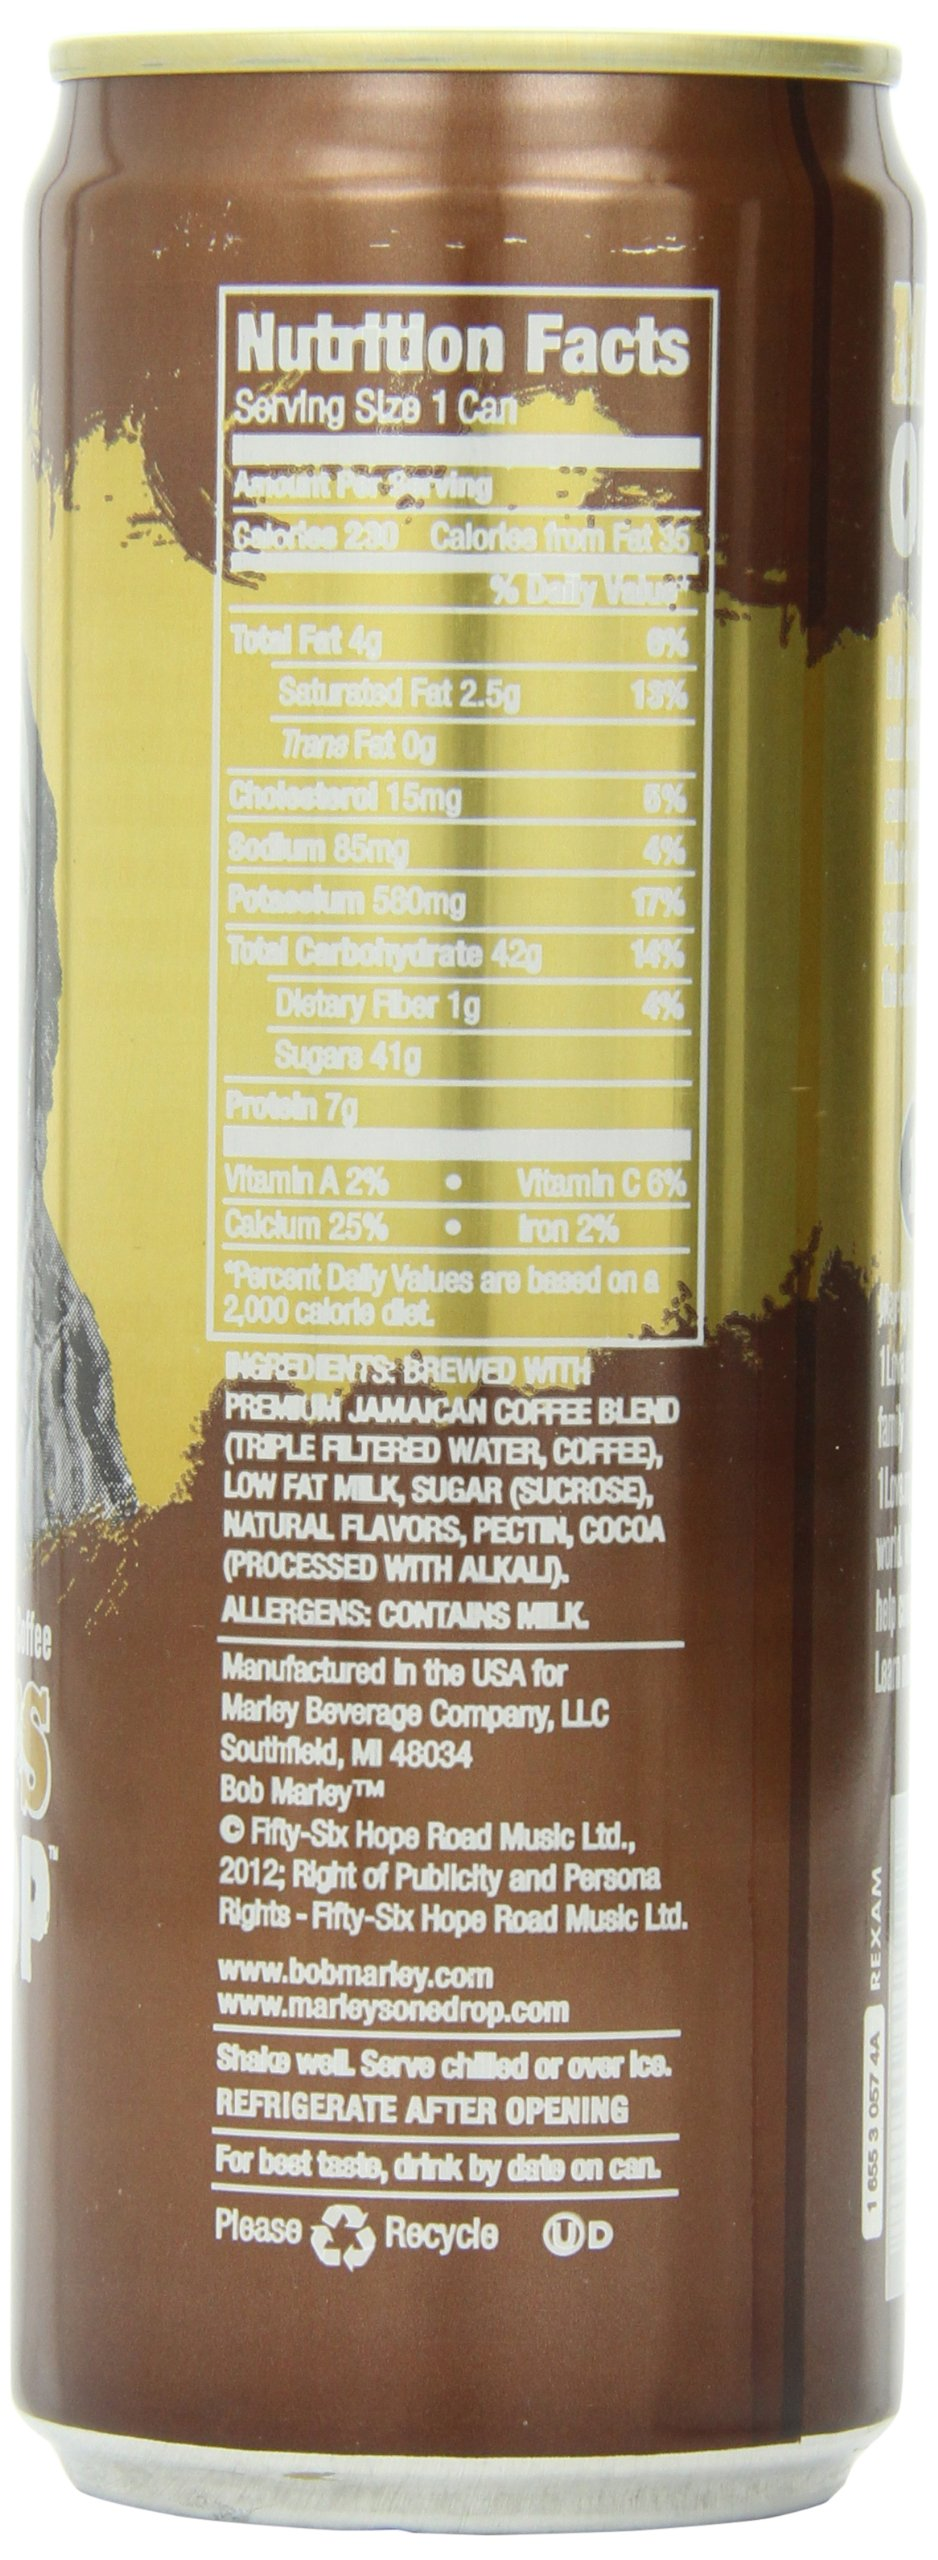 Marley Beverages One Drop Coffee, Mocha, 11 Ounce (Pack of 12)